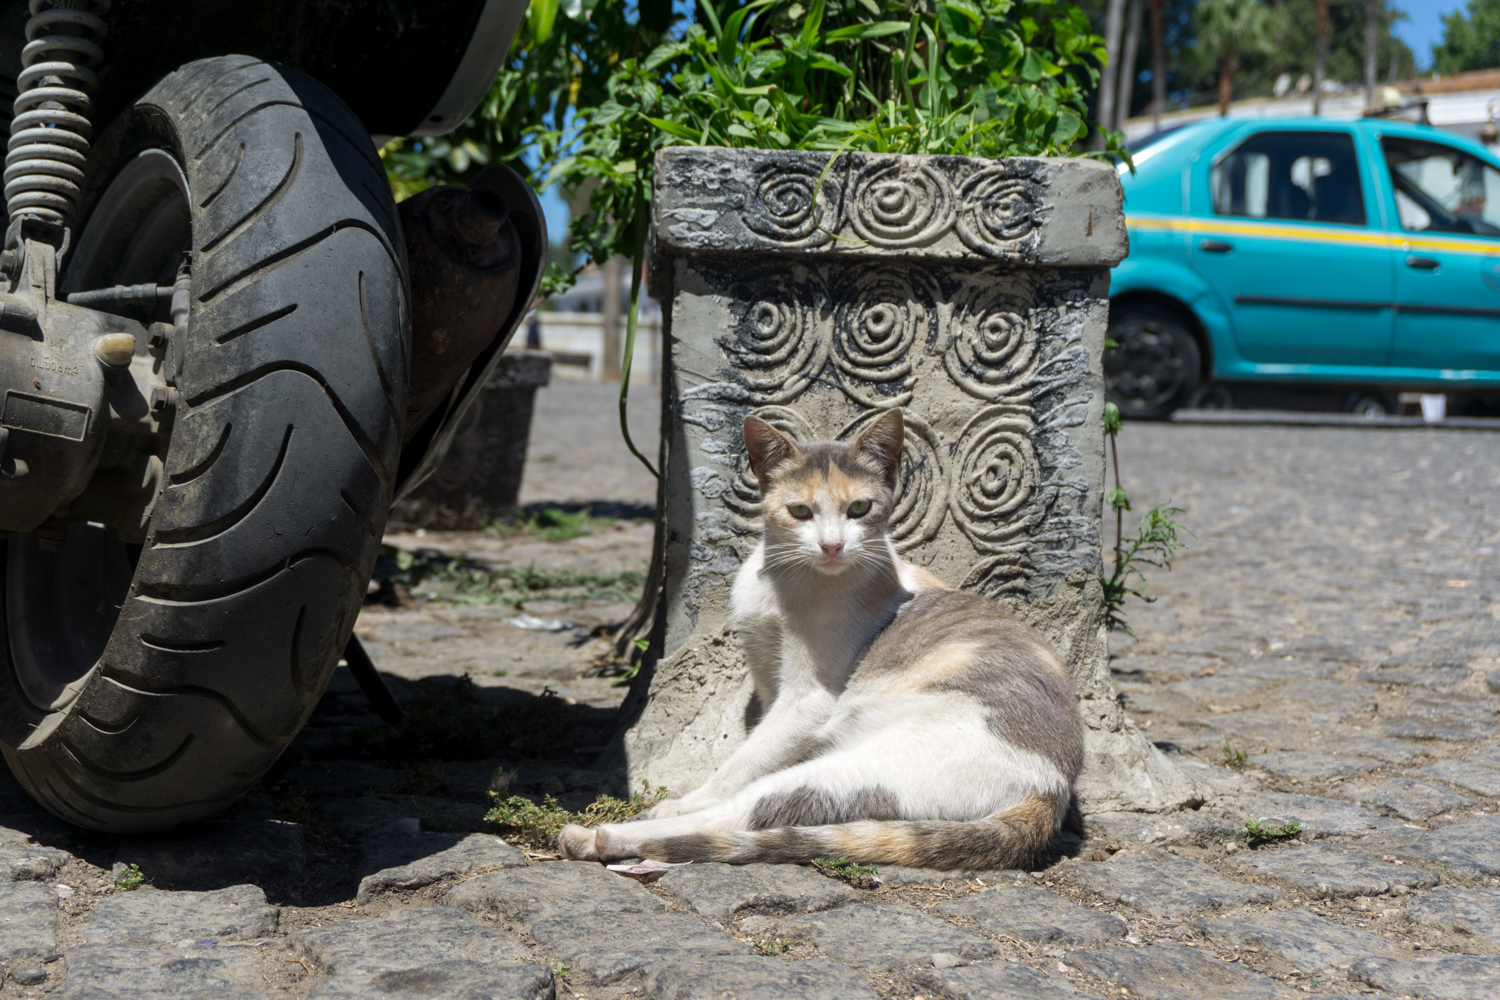 Cats are everywhere in Morocco. This one, like most, was catching some rest in the middle of a long hot day.